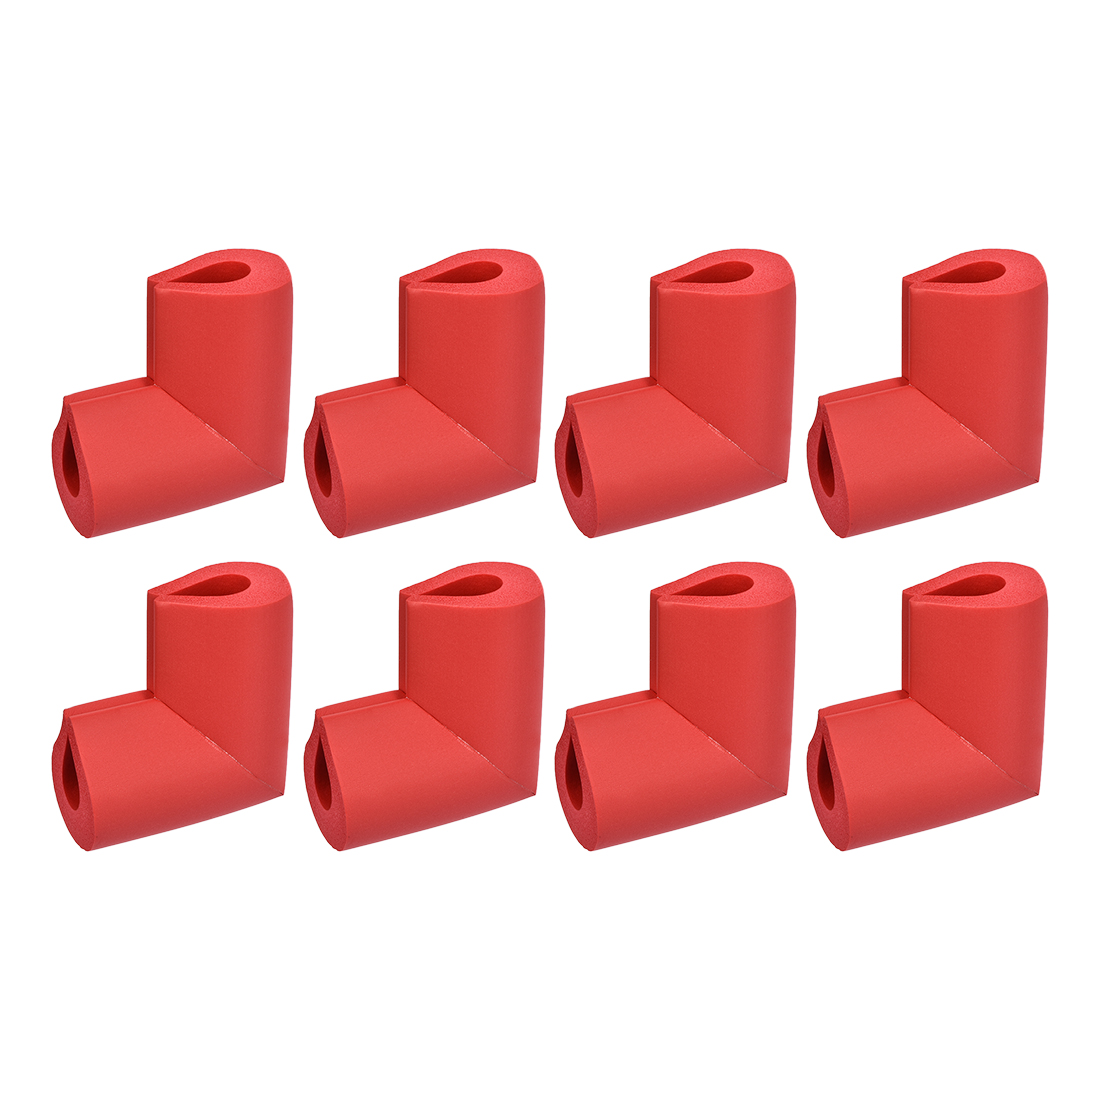 Corners Table Edge Guard U Shaped Angle Corner Guards 50 x 38 x 8mm Red 8pcs